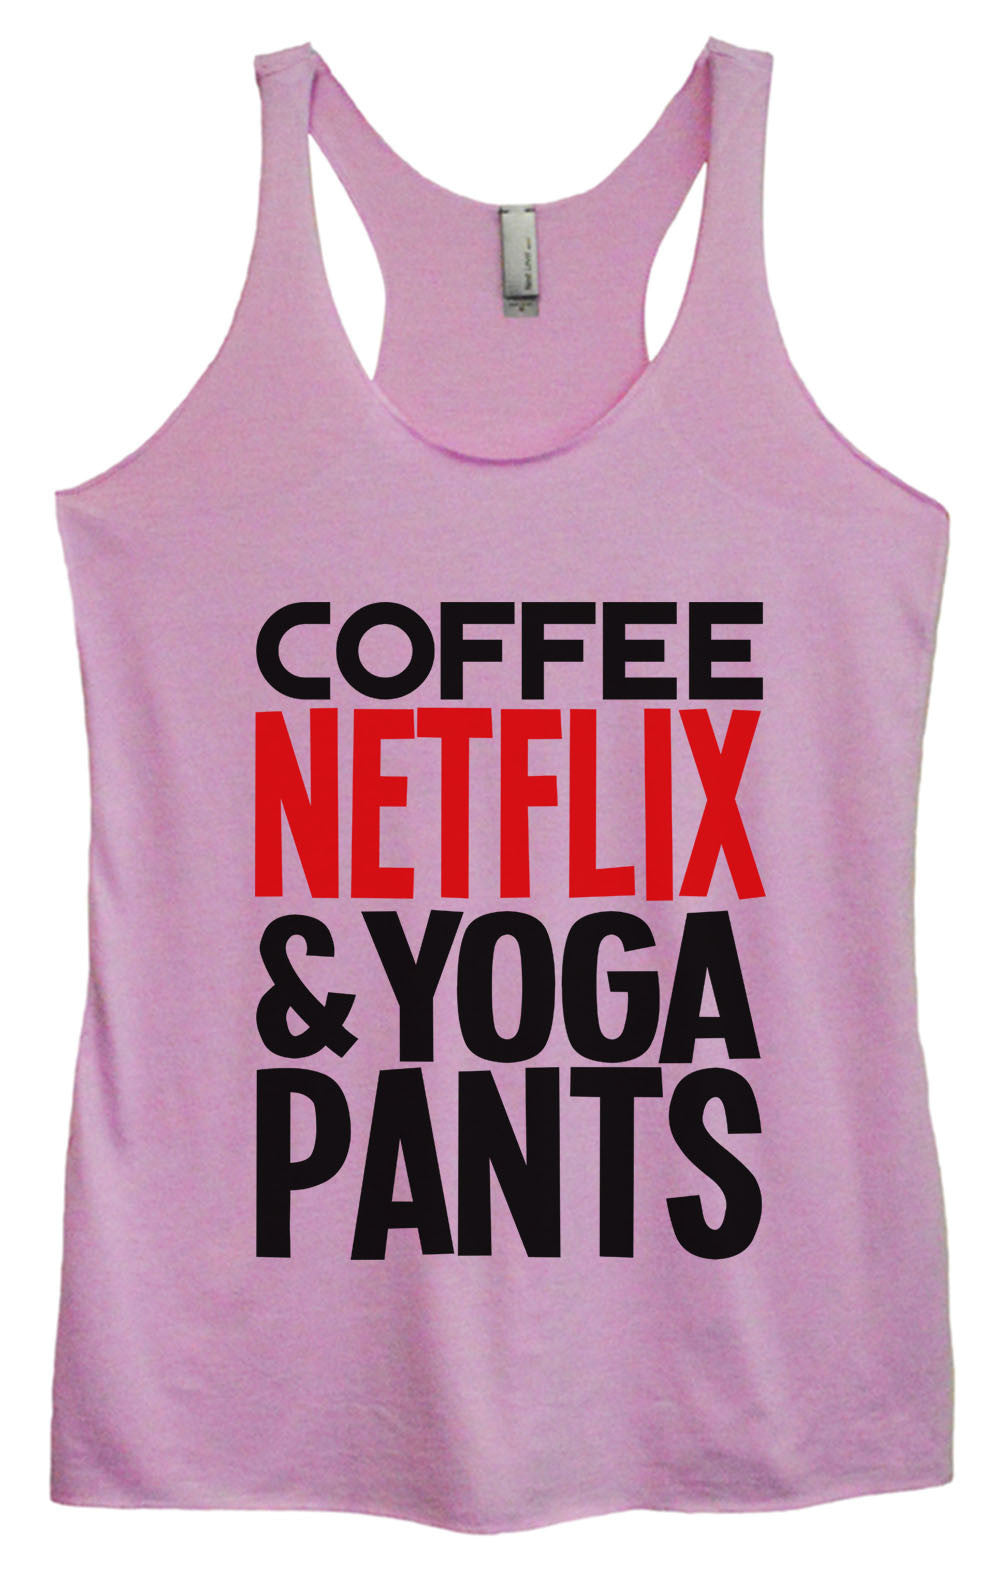 Womens Fashion Triblend Tank Top - Coffee Netflix & Yoga Pants - Tri-995 - Funny Shirts Tank Tops Burnouts and Triblends  - 1